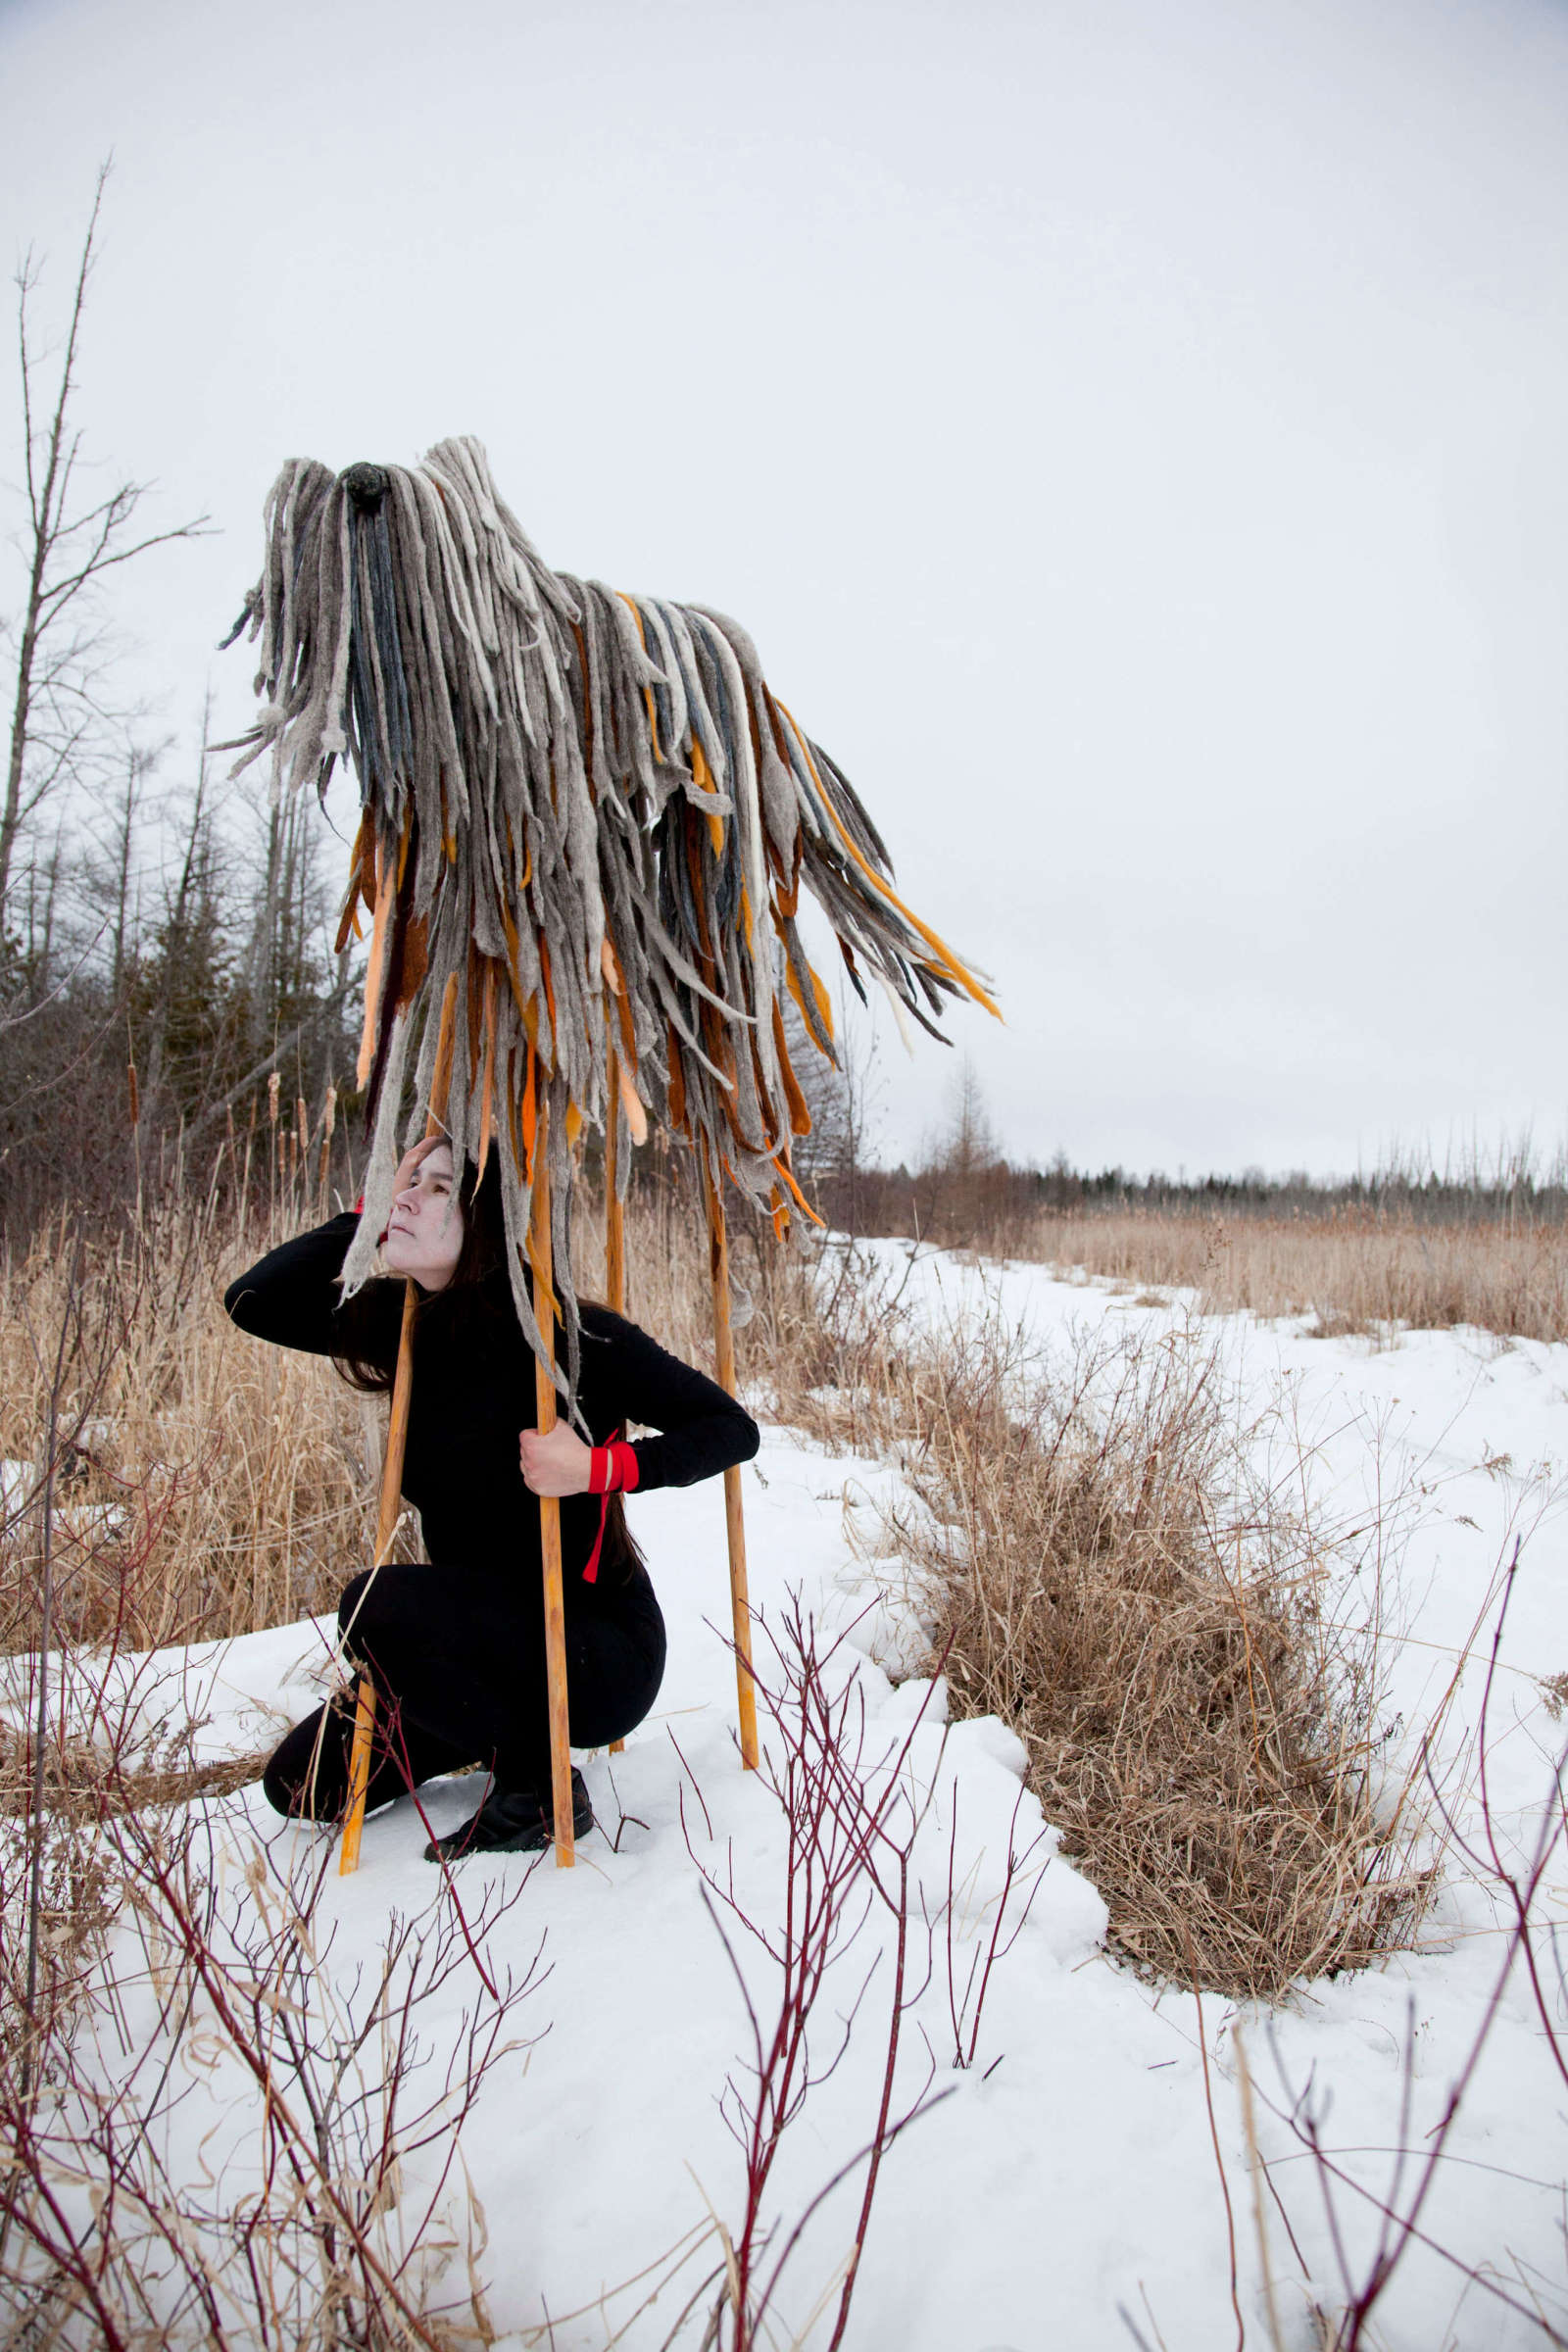 "<span class=""link fancybox-details-link""><a href=""/artists/122/series/wanderings/31669-meryl-mcmaster-keeper-s-crossing-2015/"">View Detail Page</a></span><div class=""artist""><strong>Meryl McMaster</strong></div> <div class=""title""><em>Keeper's Crossing</em>, 2015</div> <div class=""signed_and_dated"">From the series ""Wanderings""<br /> Signed, titled, dated, and editioned, au mount verso<br /> Printed 2018</div> <div class=""medium"">Archival pigment print on watercolour paper</div> <div class=""dimensions"">45 x 30 inch (114.3 x 76.2 cm)</div> <div class=""edition_details"">Edition of 3 + 2 APs (#2/3)</div><div class=""copyright_line""> </div>"